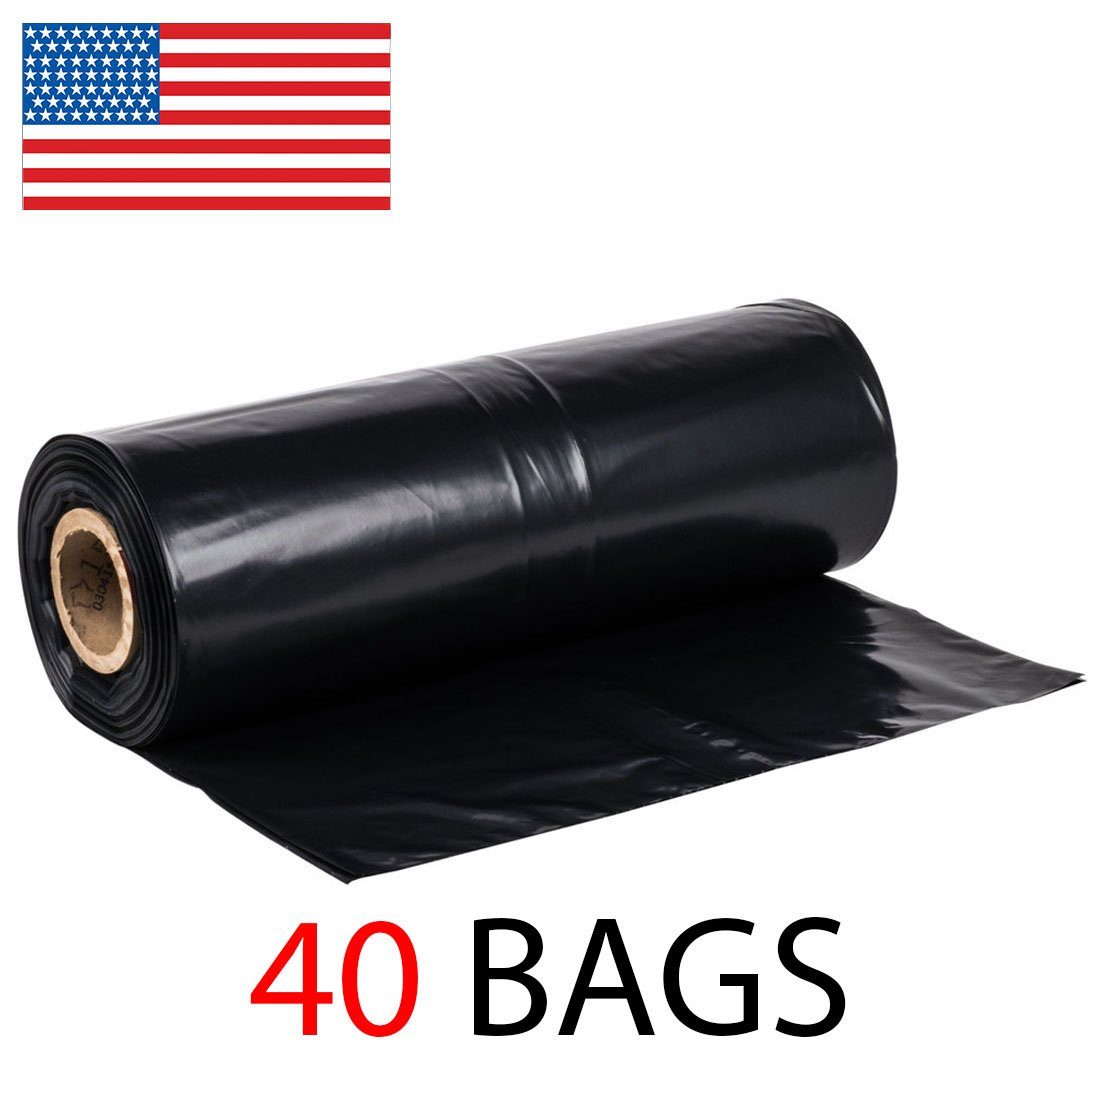 42 Gallon Extra Heavy Duty Contractor Garbage Bags Roll, 3MIL Thick, 40 Bags on Roll, Puncture-Resistant, MADE IN USA, 37 X 43 by Ox Plastics